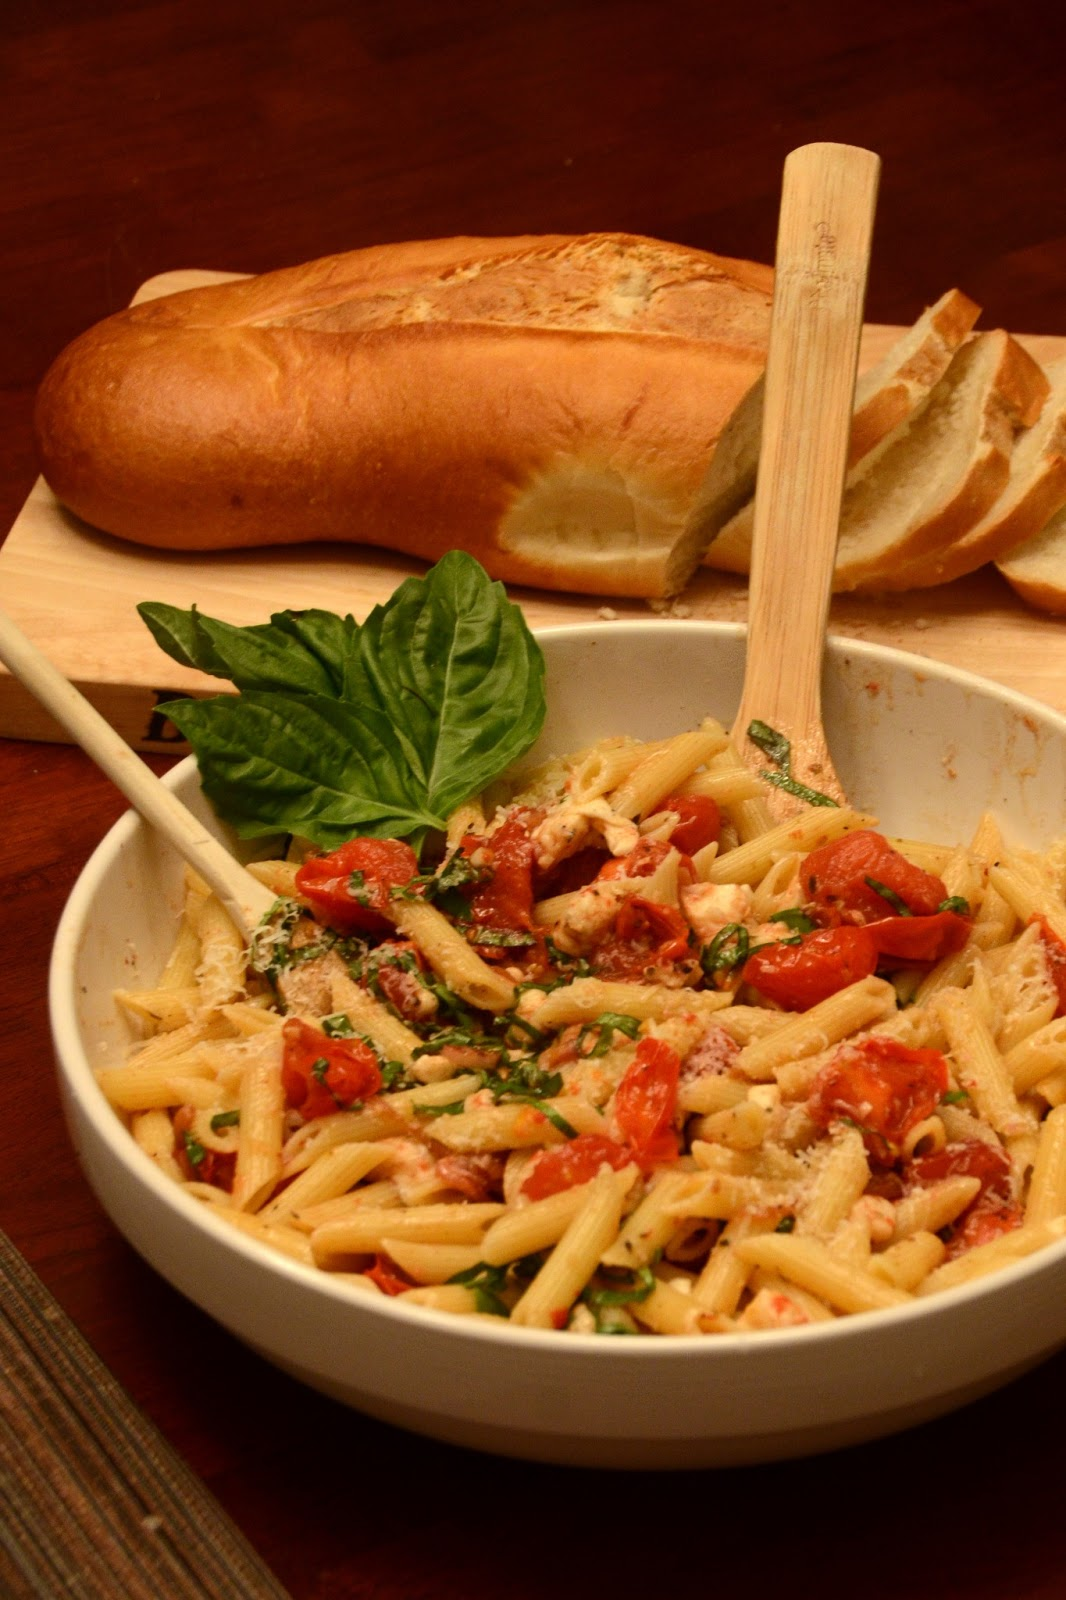 Food for Flicks: Summer Pasta and National Lampoon's Vacation